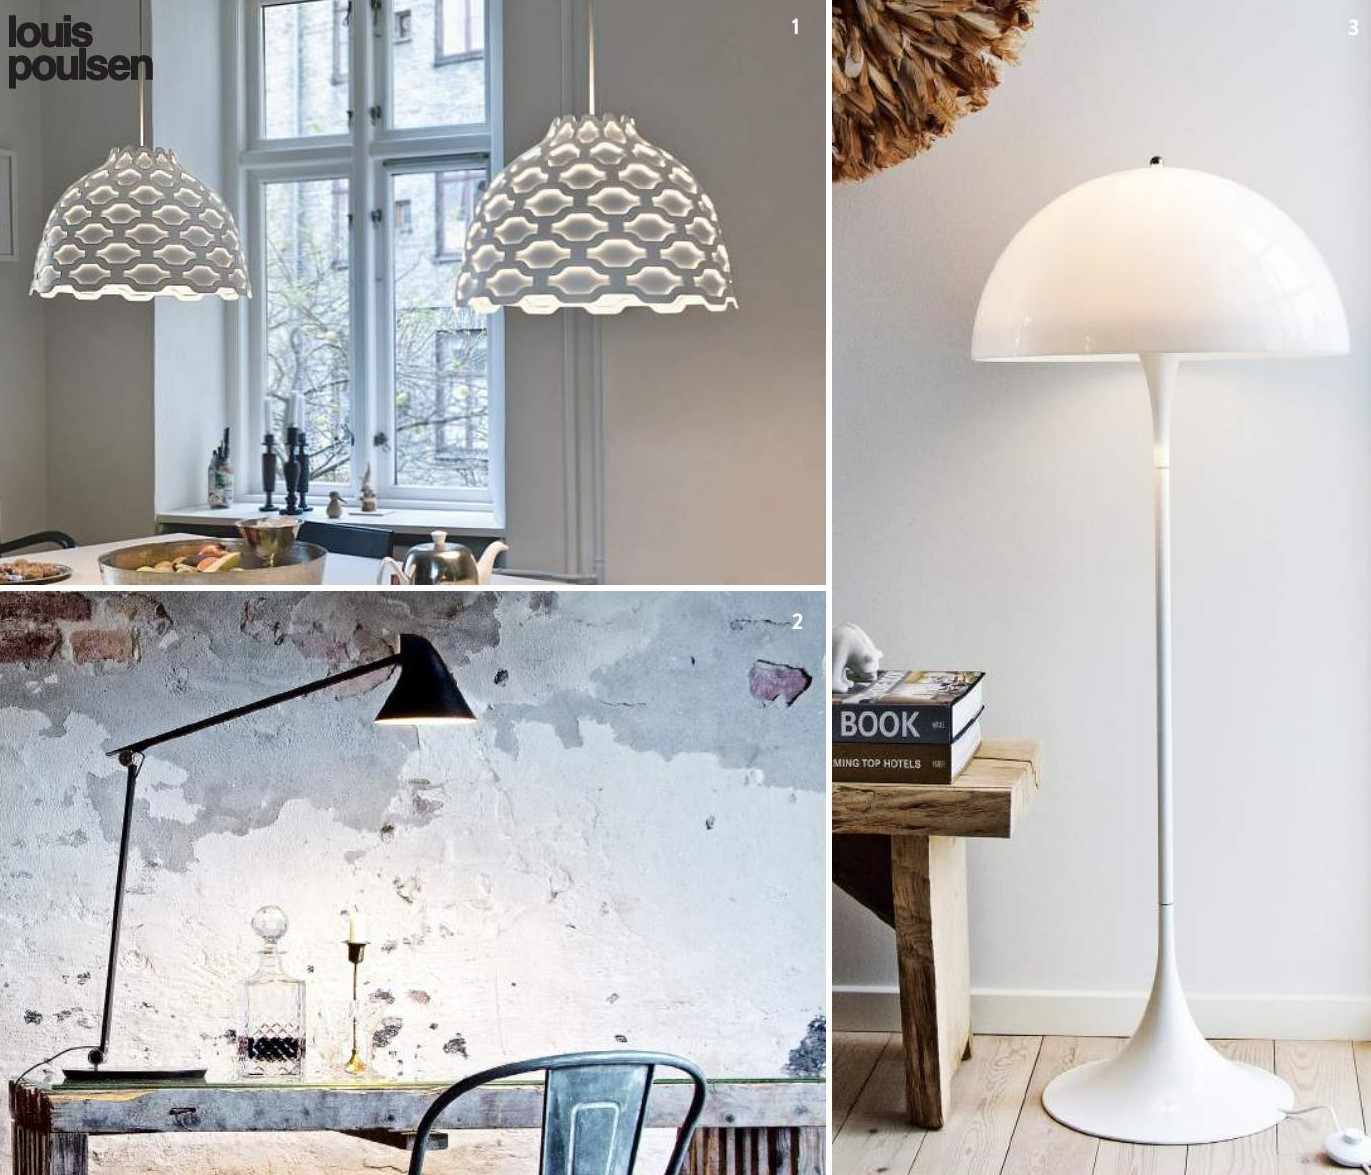 The Next One In Your List Top 8 Lighting Stores In Copenhagen 6 lighting stores in copenhagen The Next One In Your List: Top 8 Lighting Stores In Copenhagen The Next One In Your List Top 8 Lighting Stores In Copenhagen 6